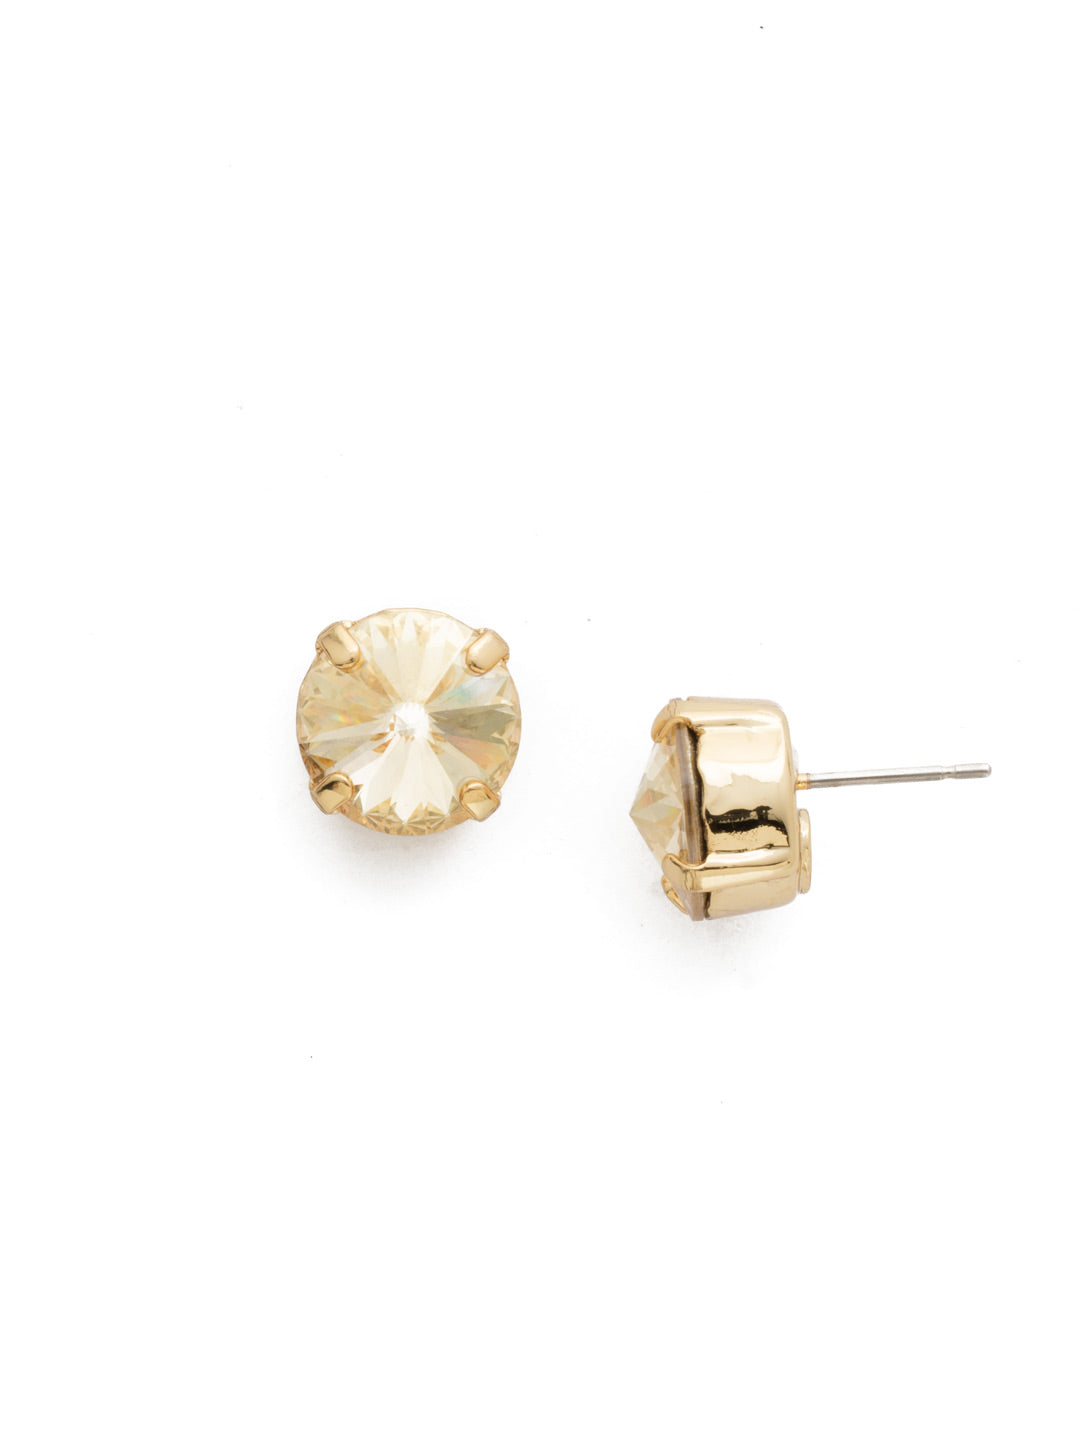 Round Crystal Stud Earrings - ECM14BGCCH